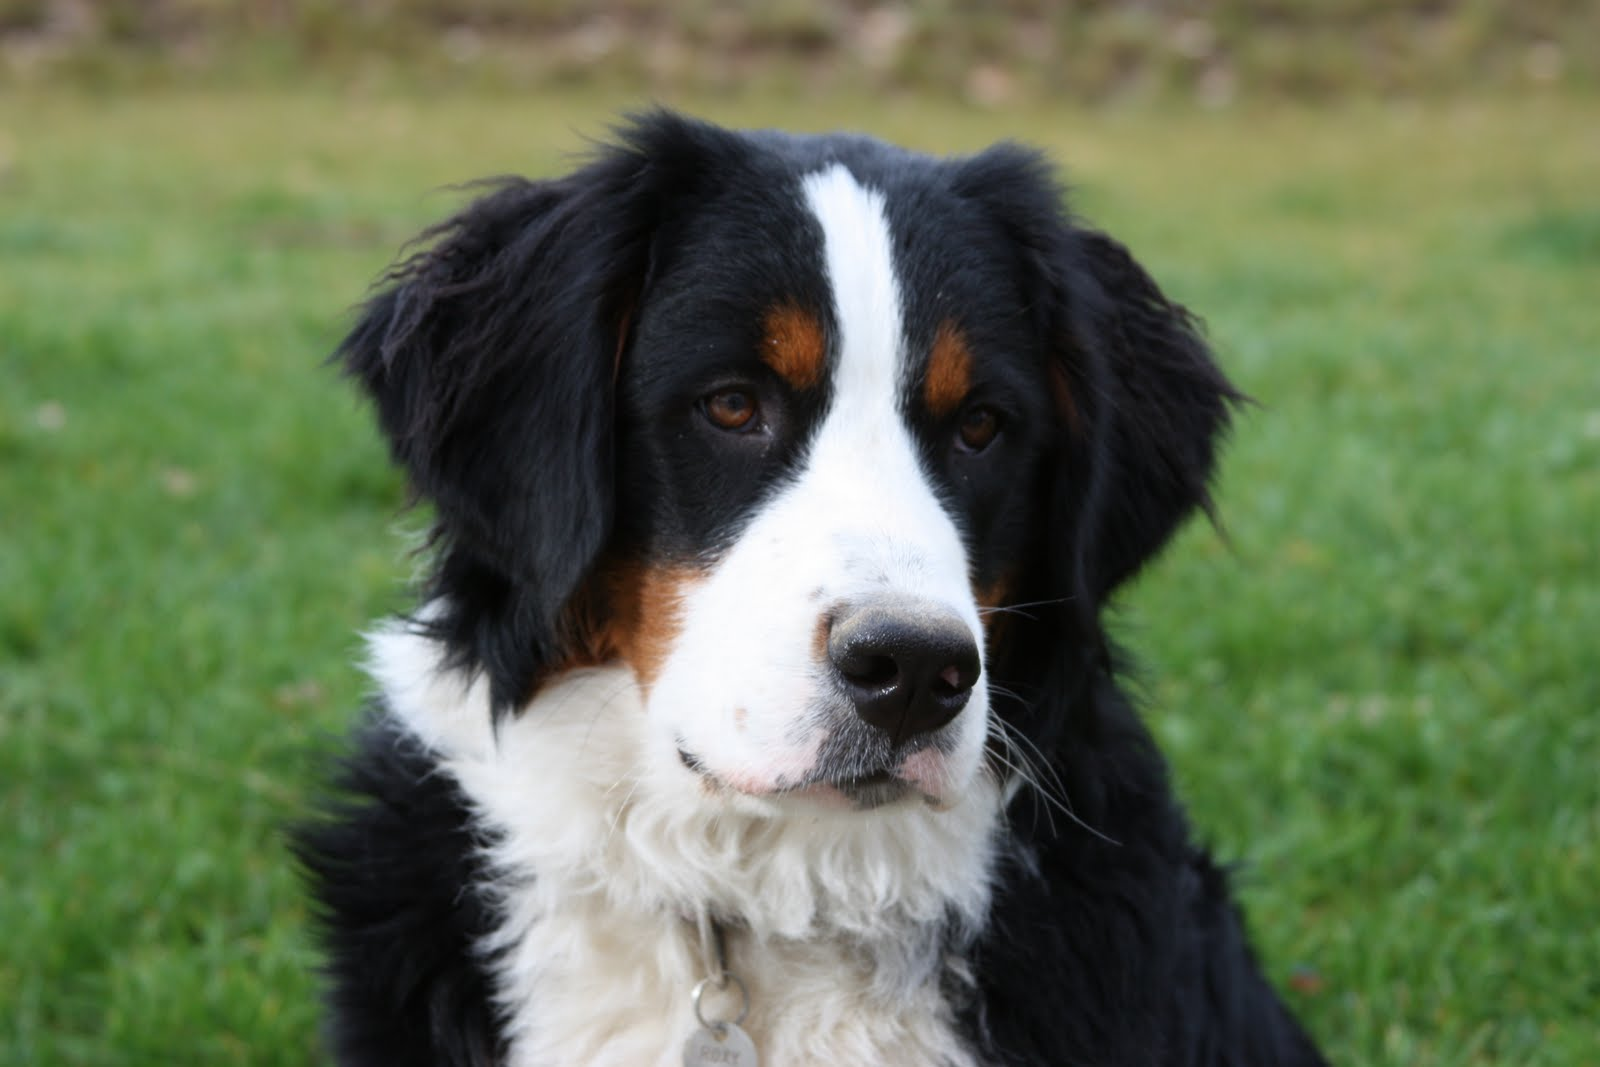 bernese mountain dog breed and photos list of dogs breeds. Black Bedroom Furniture Sets. Home Design Ideas